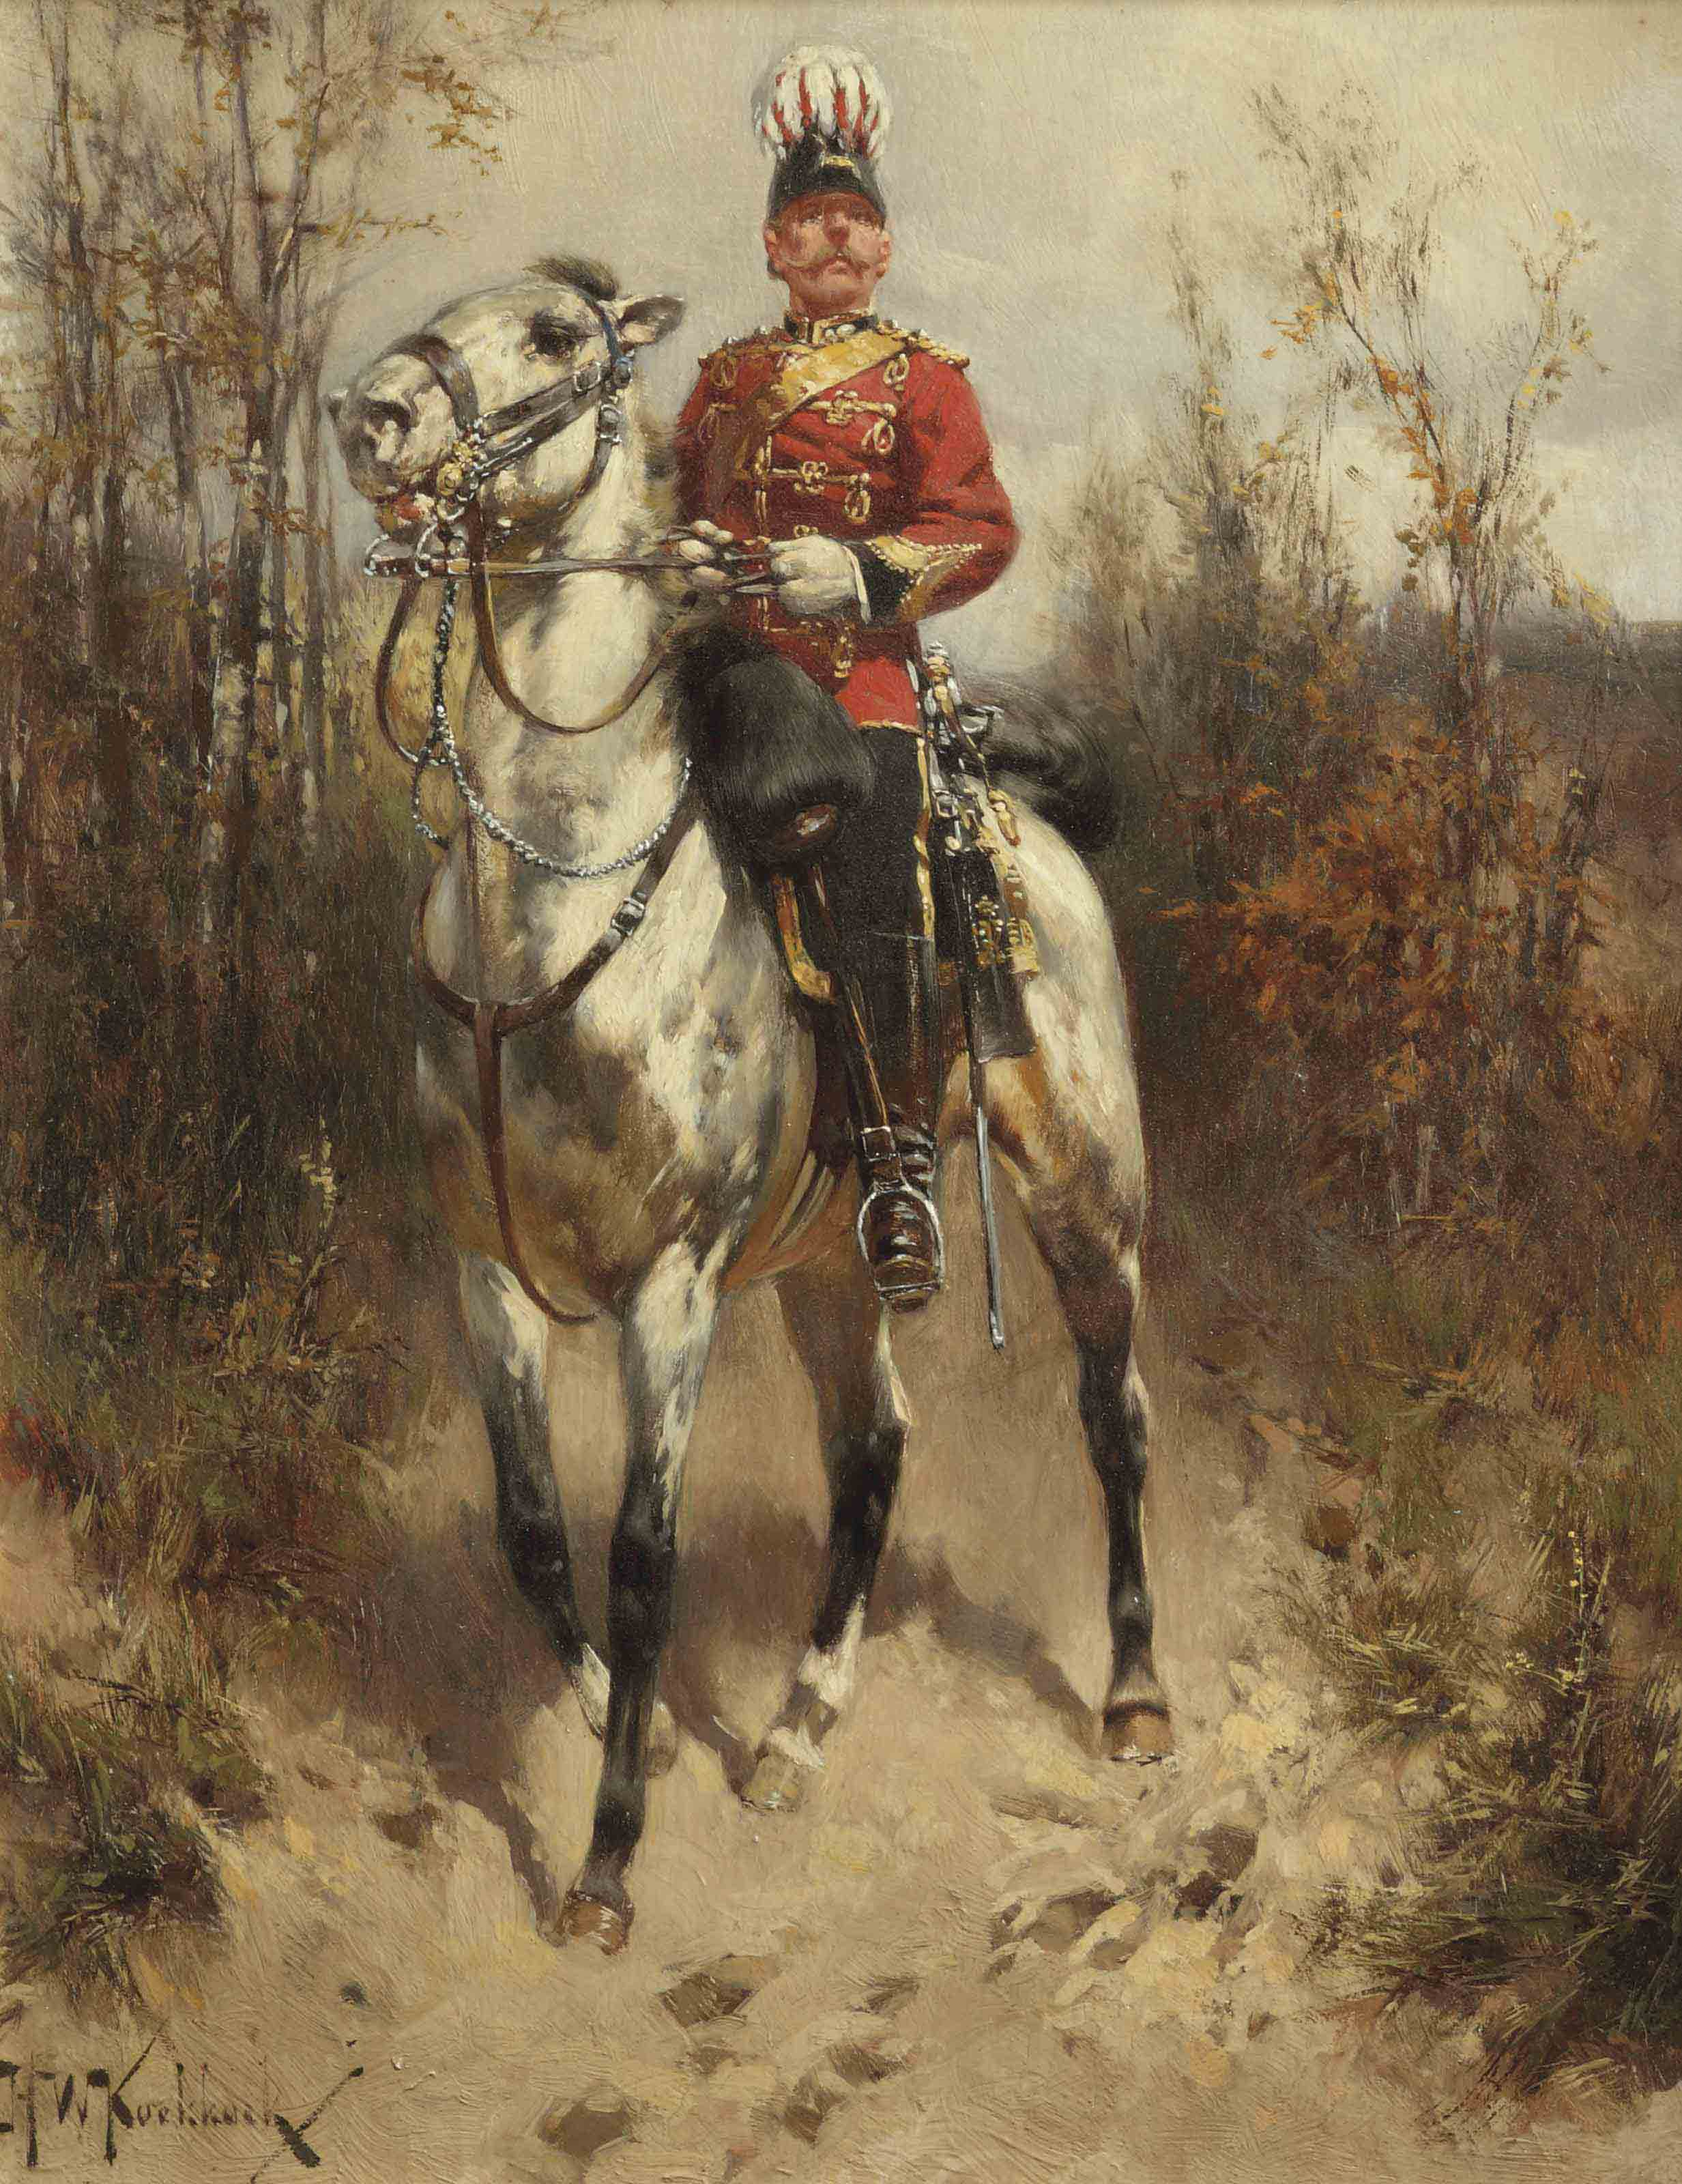 A British hussar general on horseback